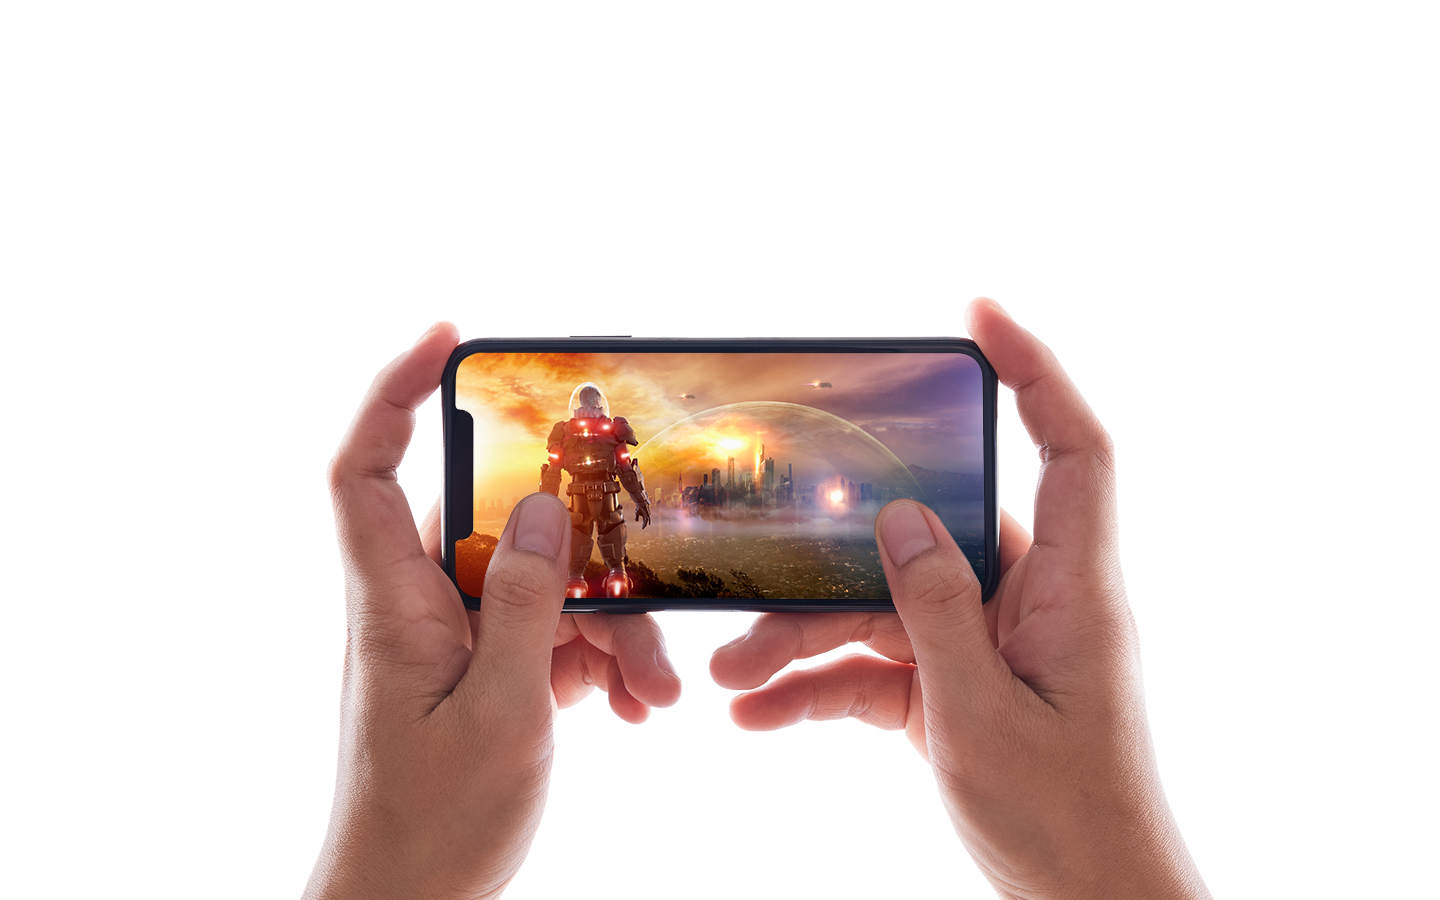 hands playing a mobile video game